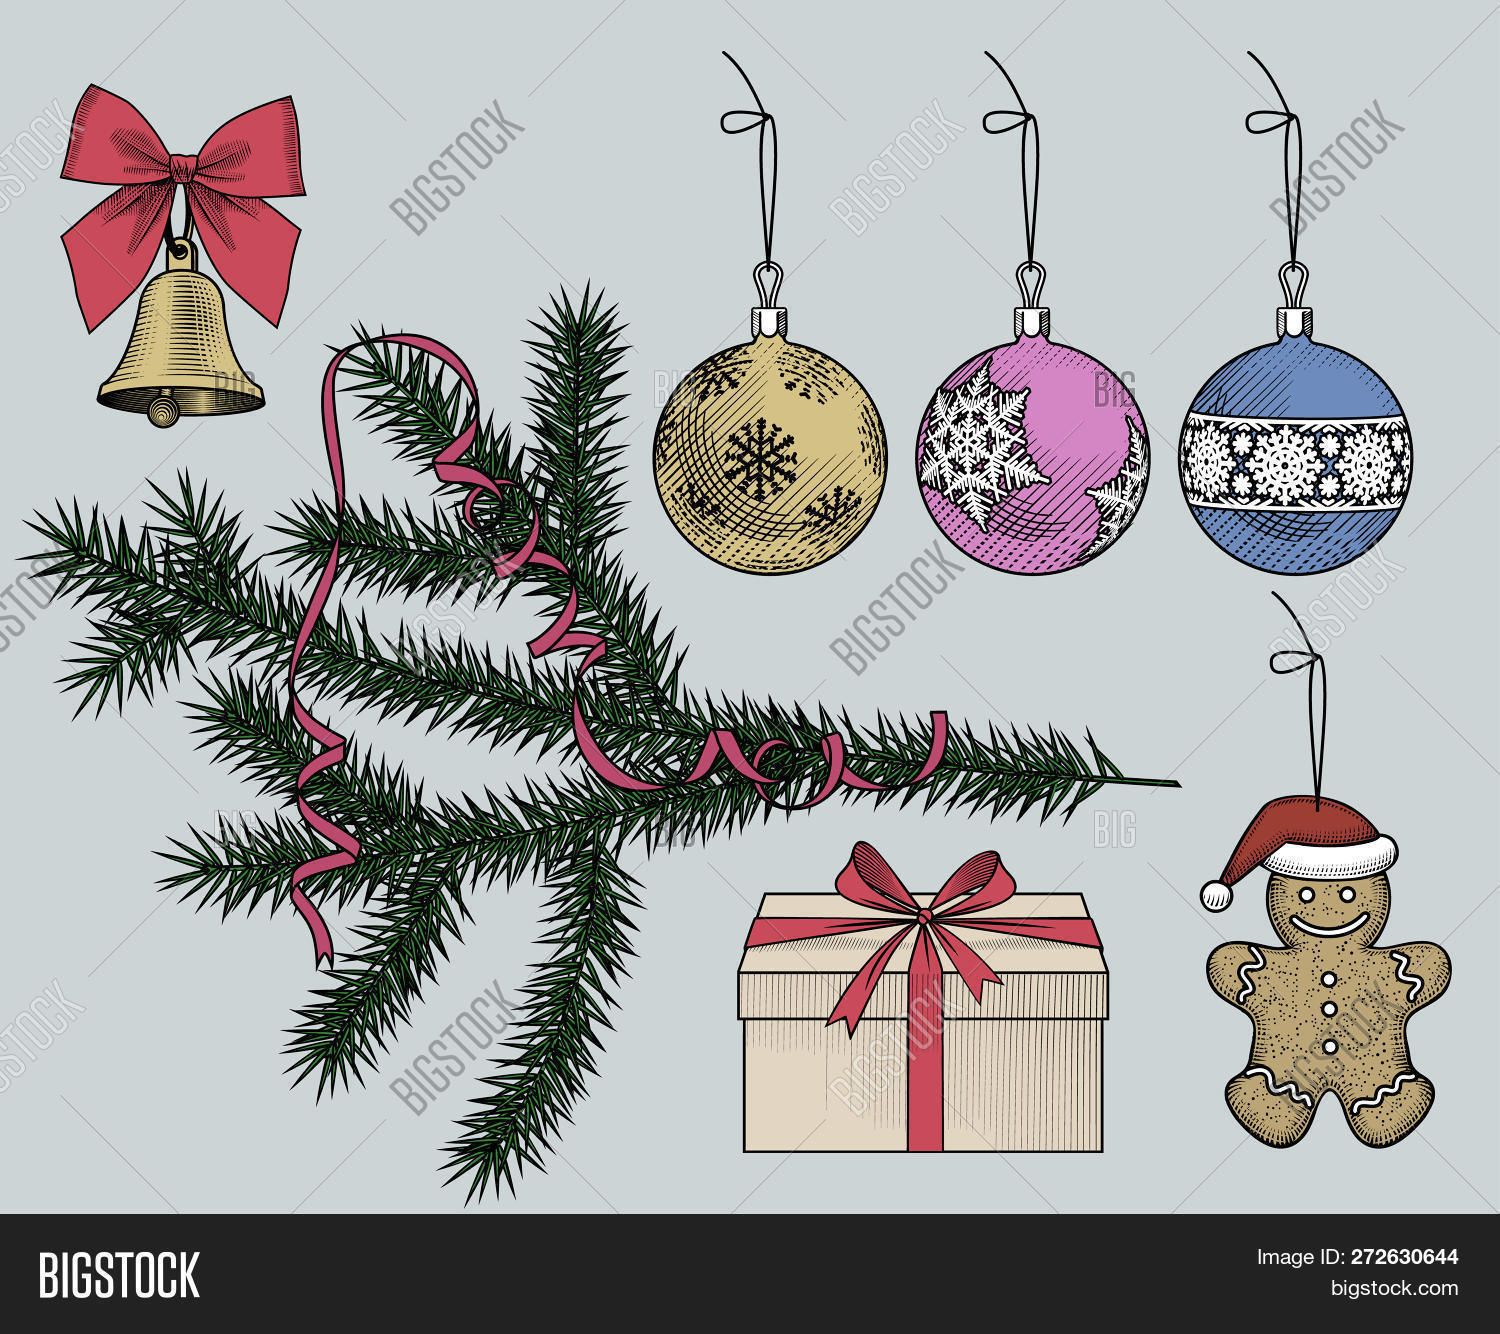 Drawings Of Christmas Ornaments.Set Christmas Image Photo Free Trial Bigstock